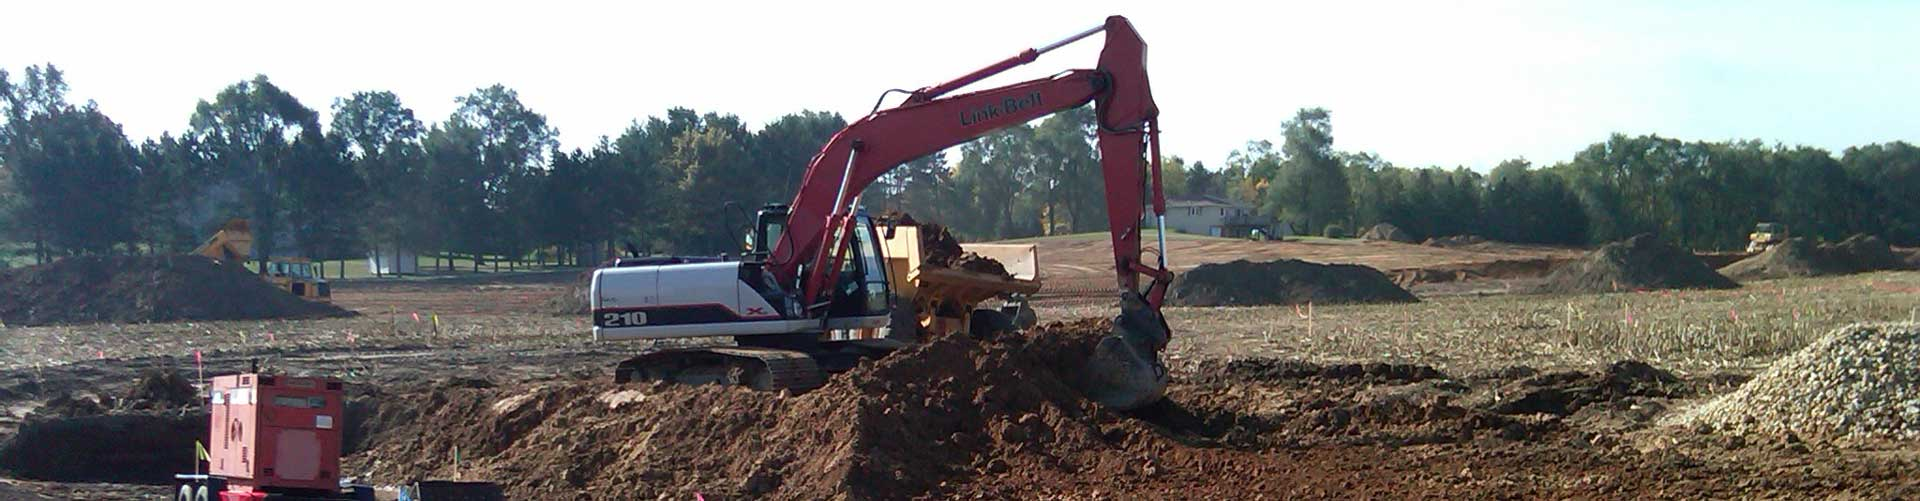 excavation_header1